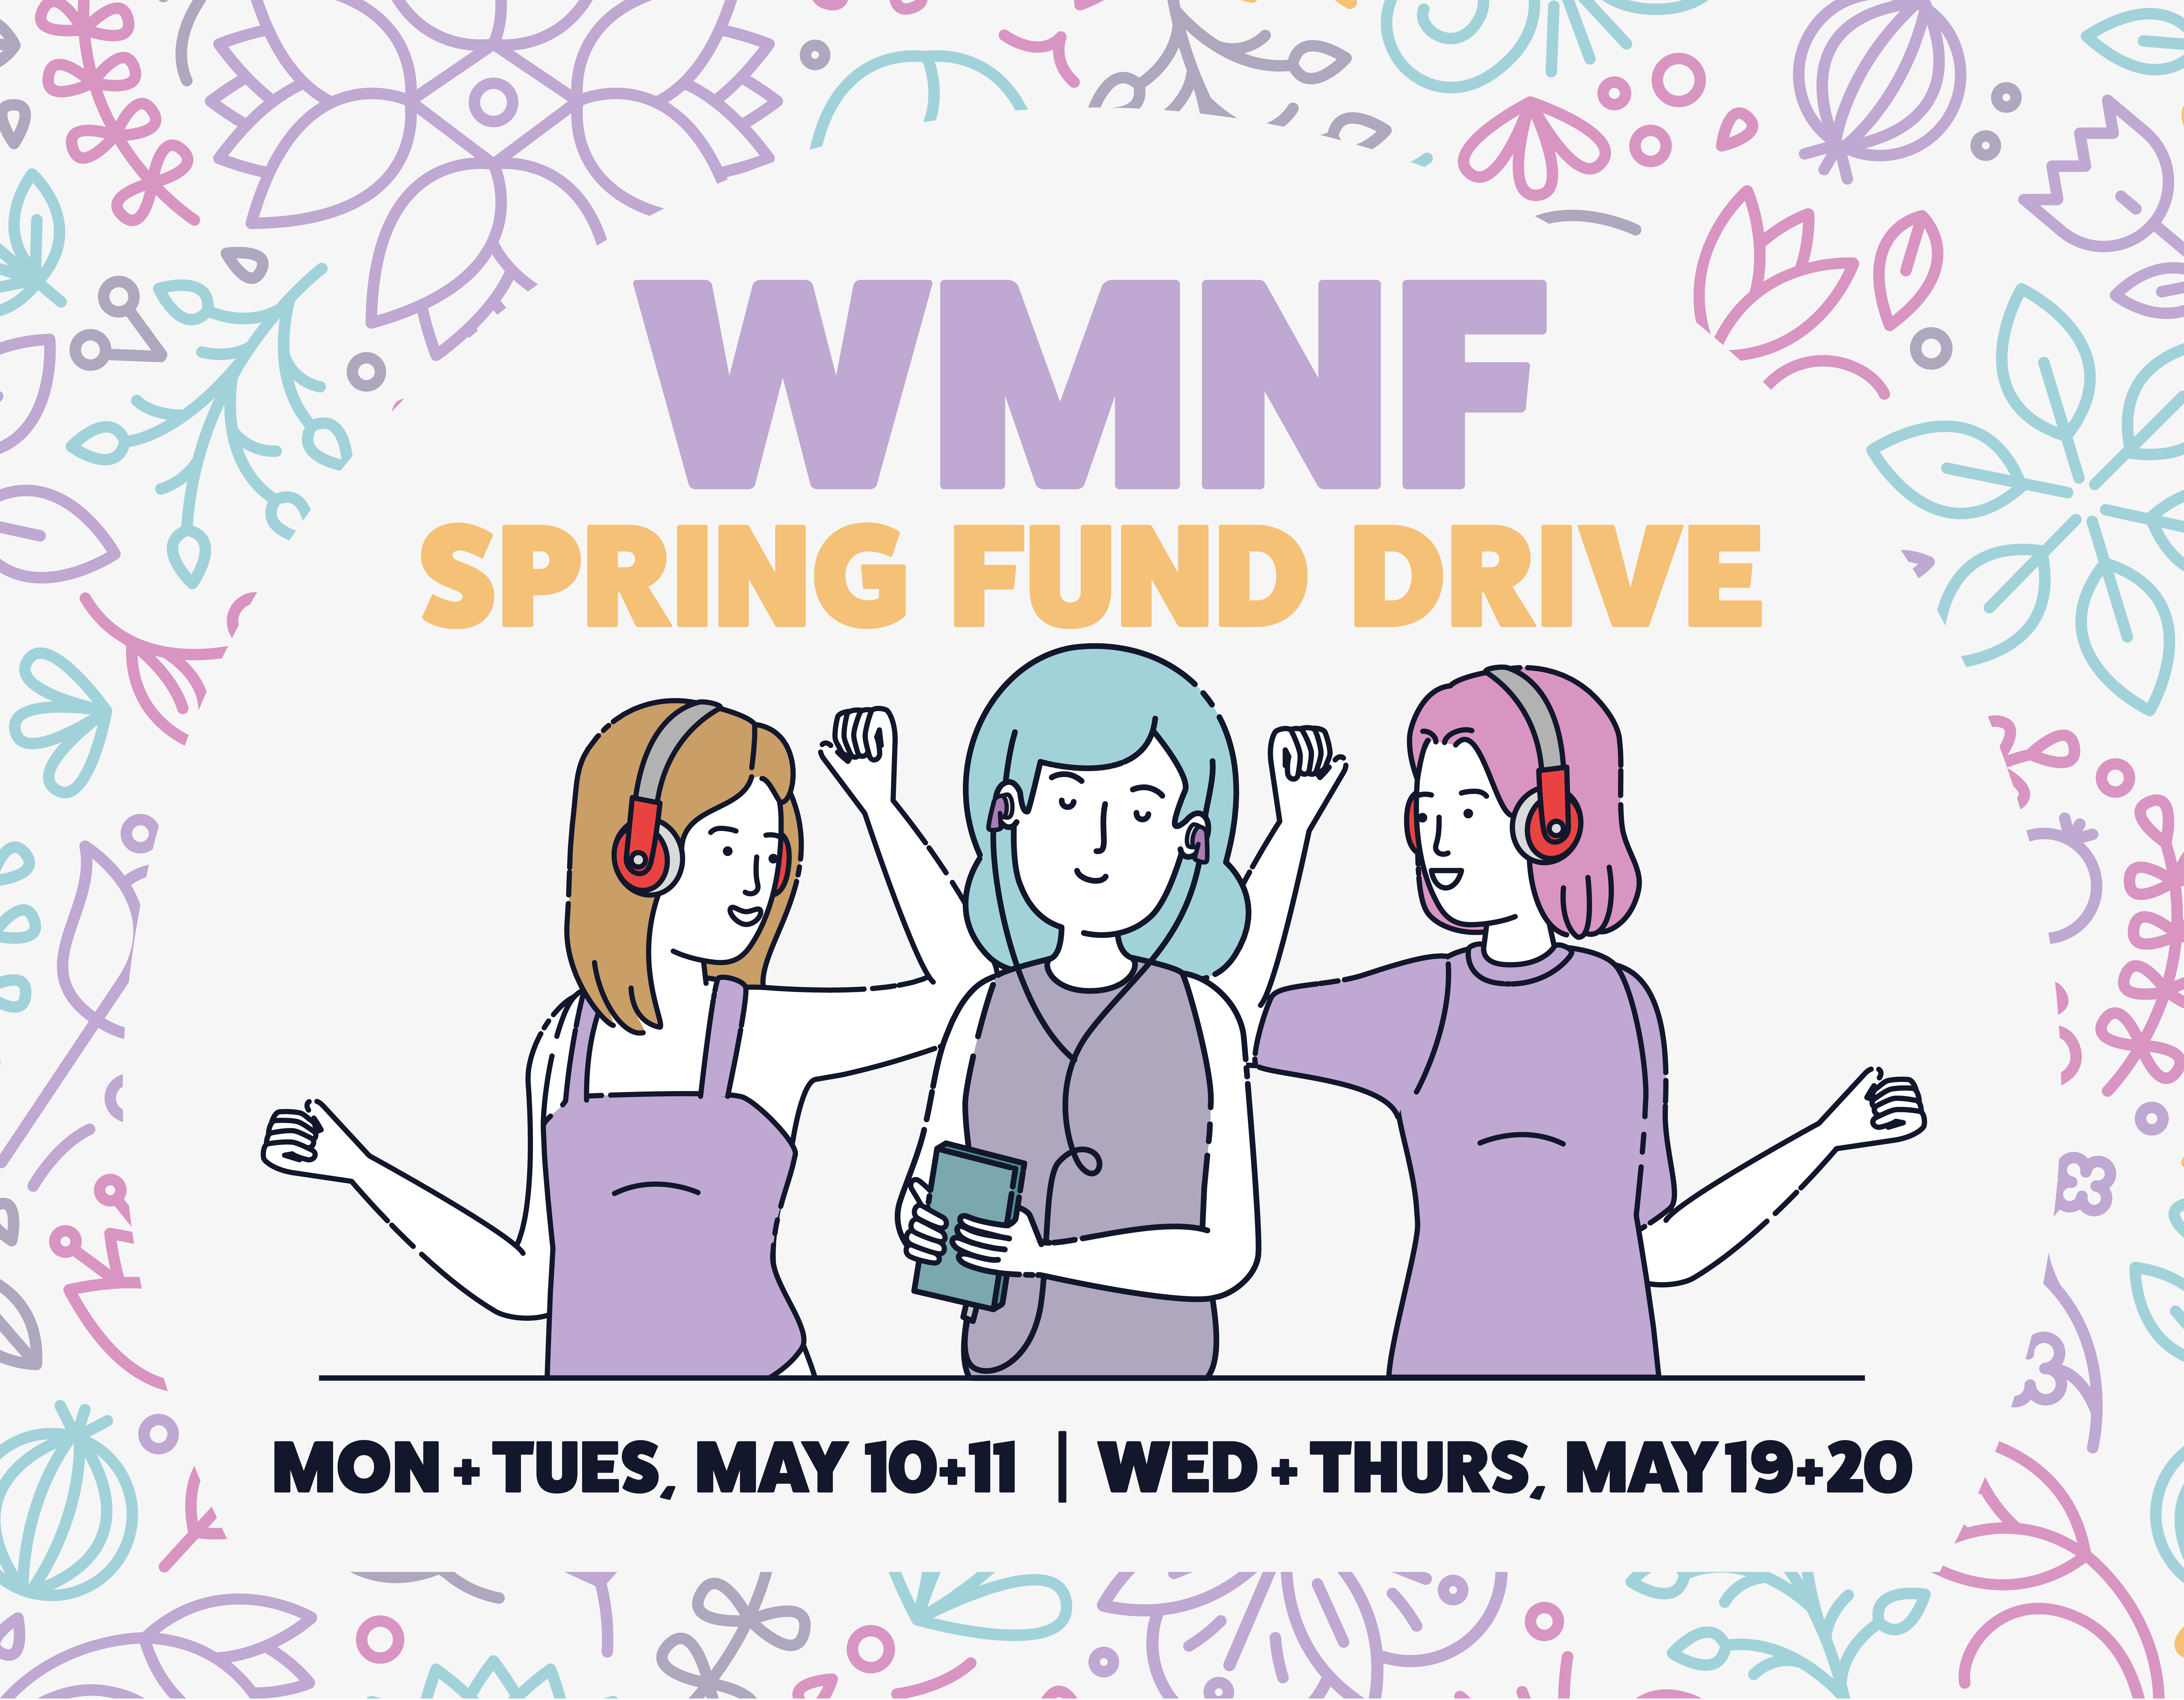 WMNF 2021 Spring Fund Drive